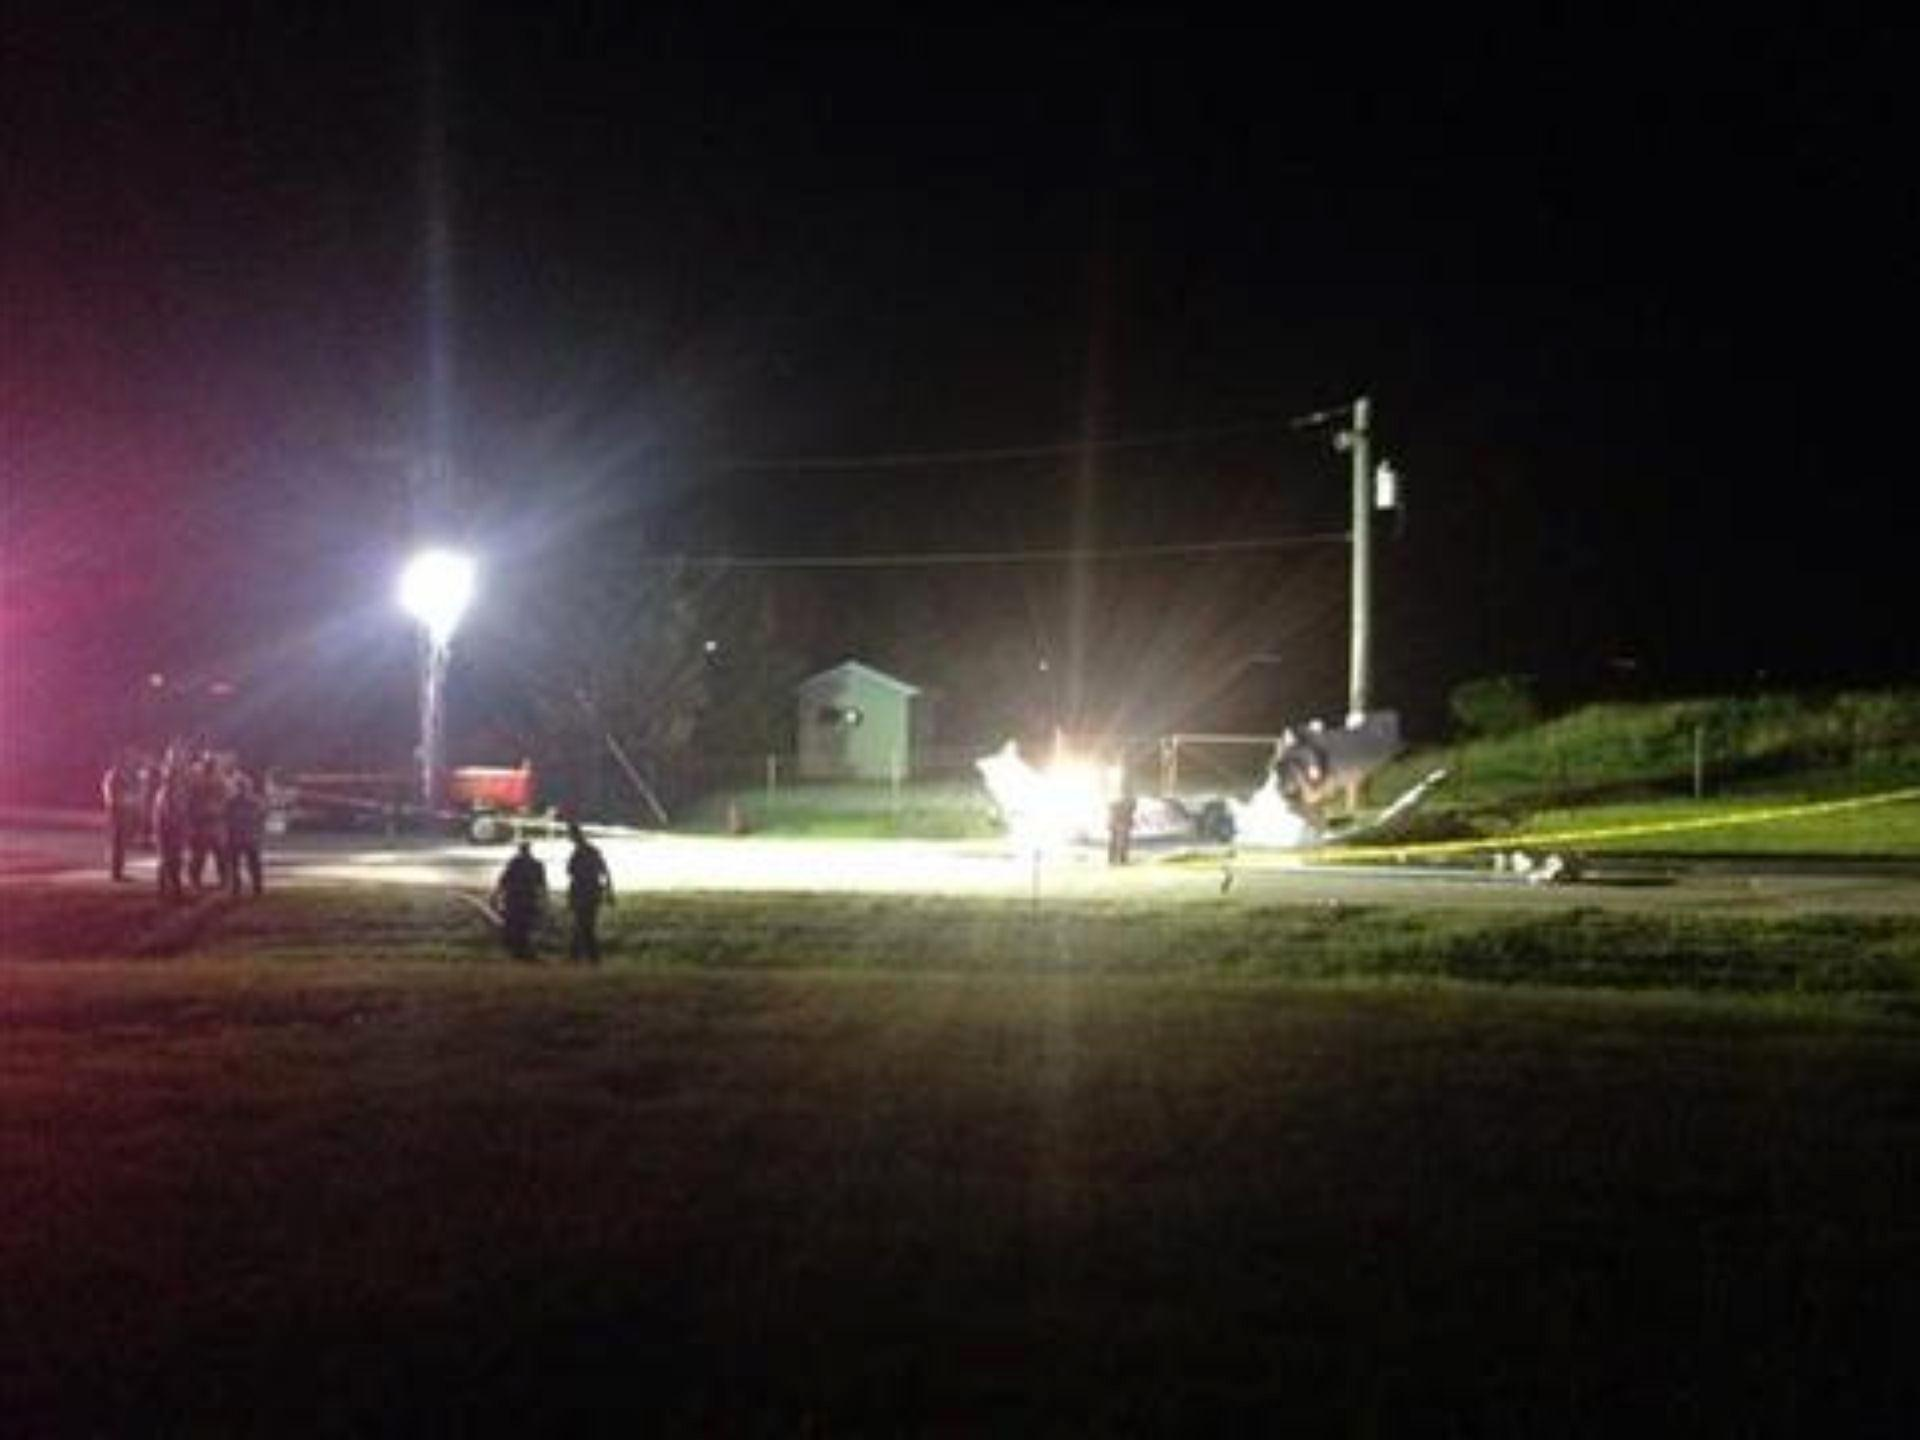 Image: Four people died in a fiery plane crash at the Cuyahoga County Airport in Ohio late Monday night.